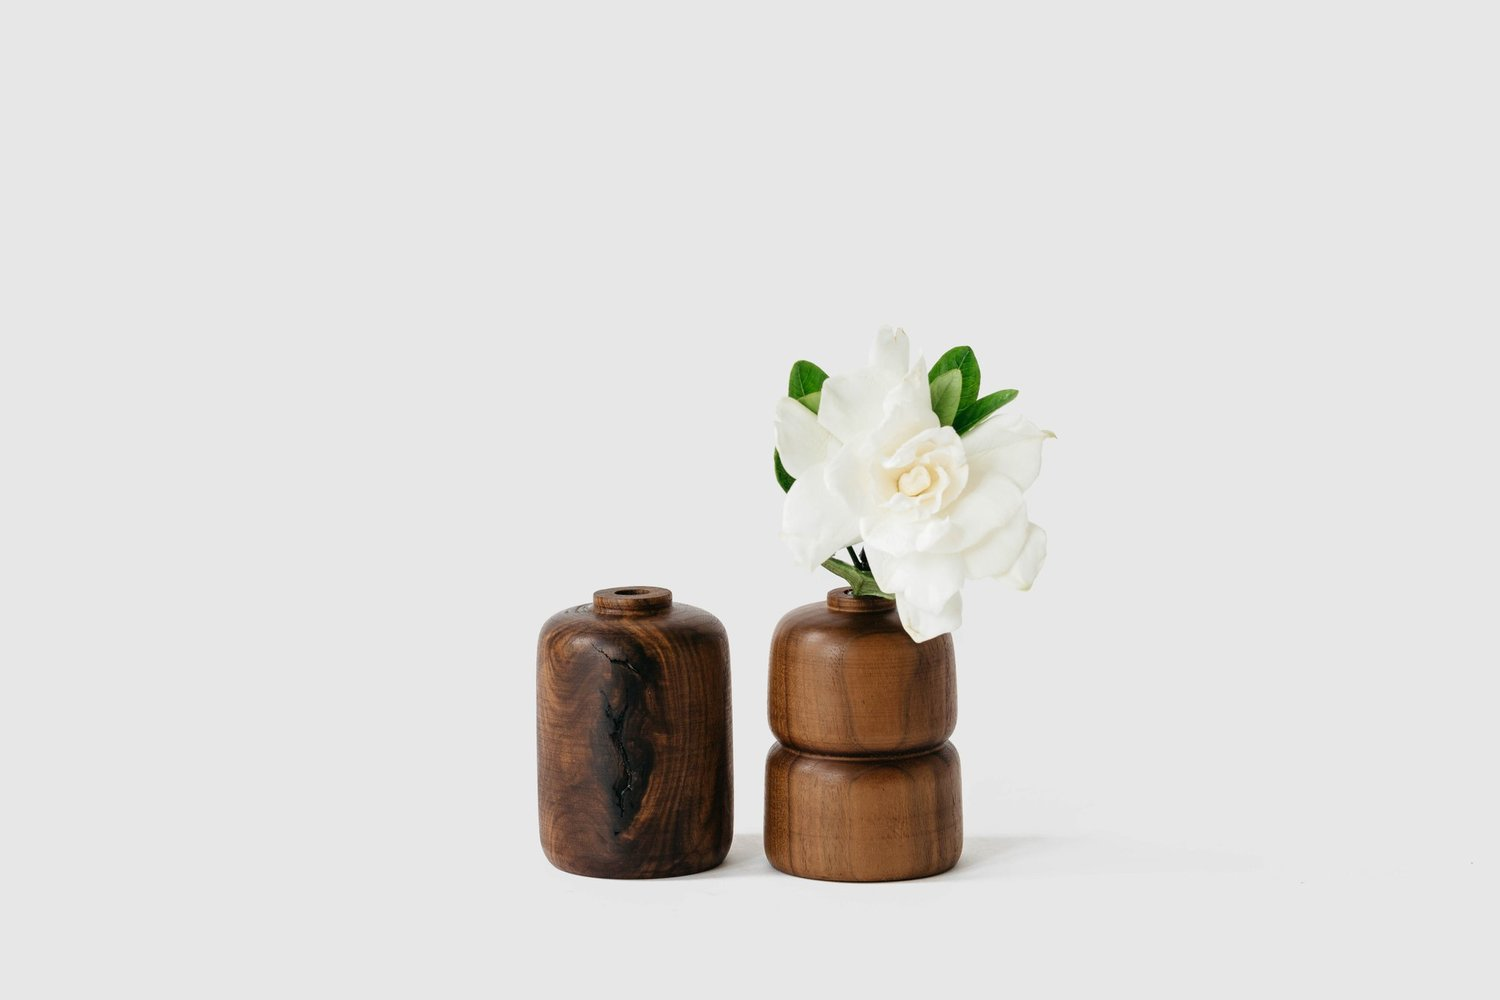 Walnut vase  e1a8296 edit